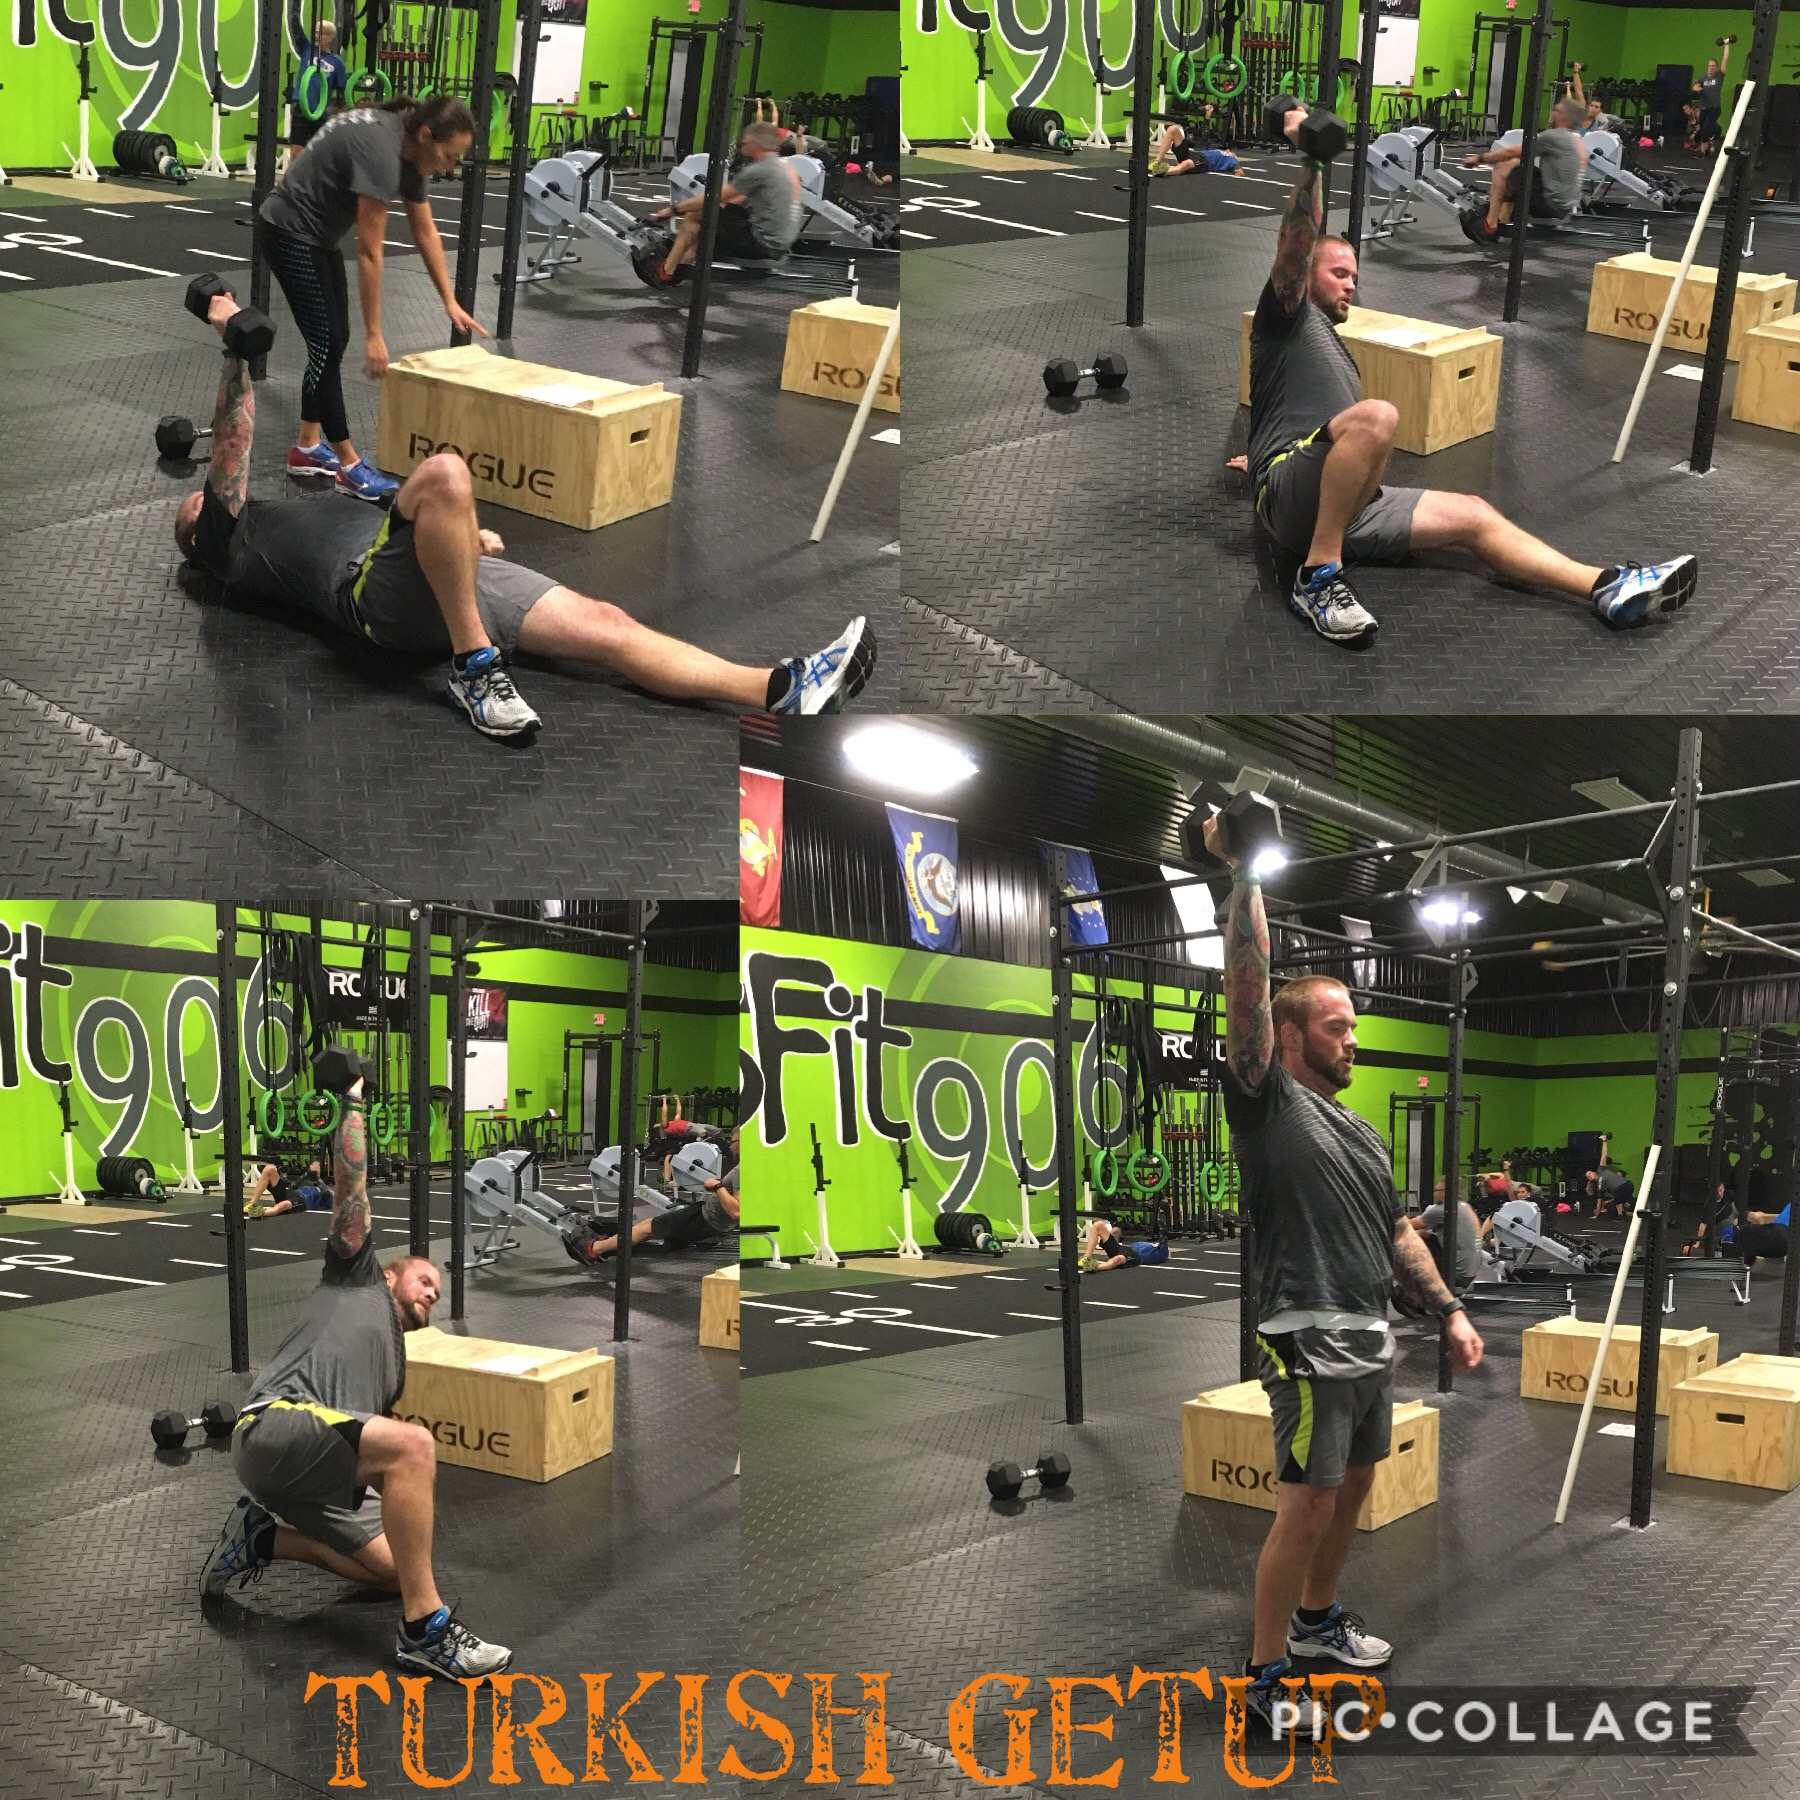 Results Crossfit Workout: Results Crossfit 906